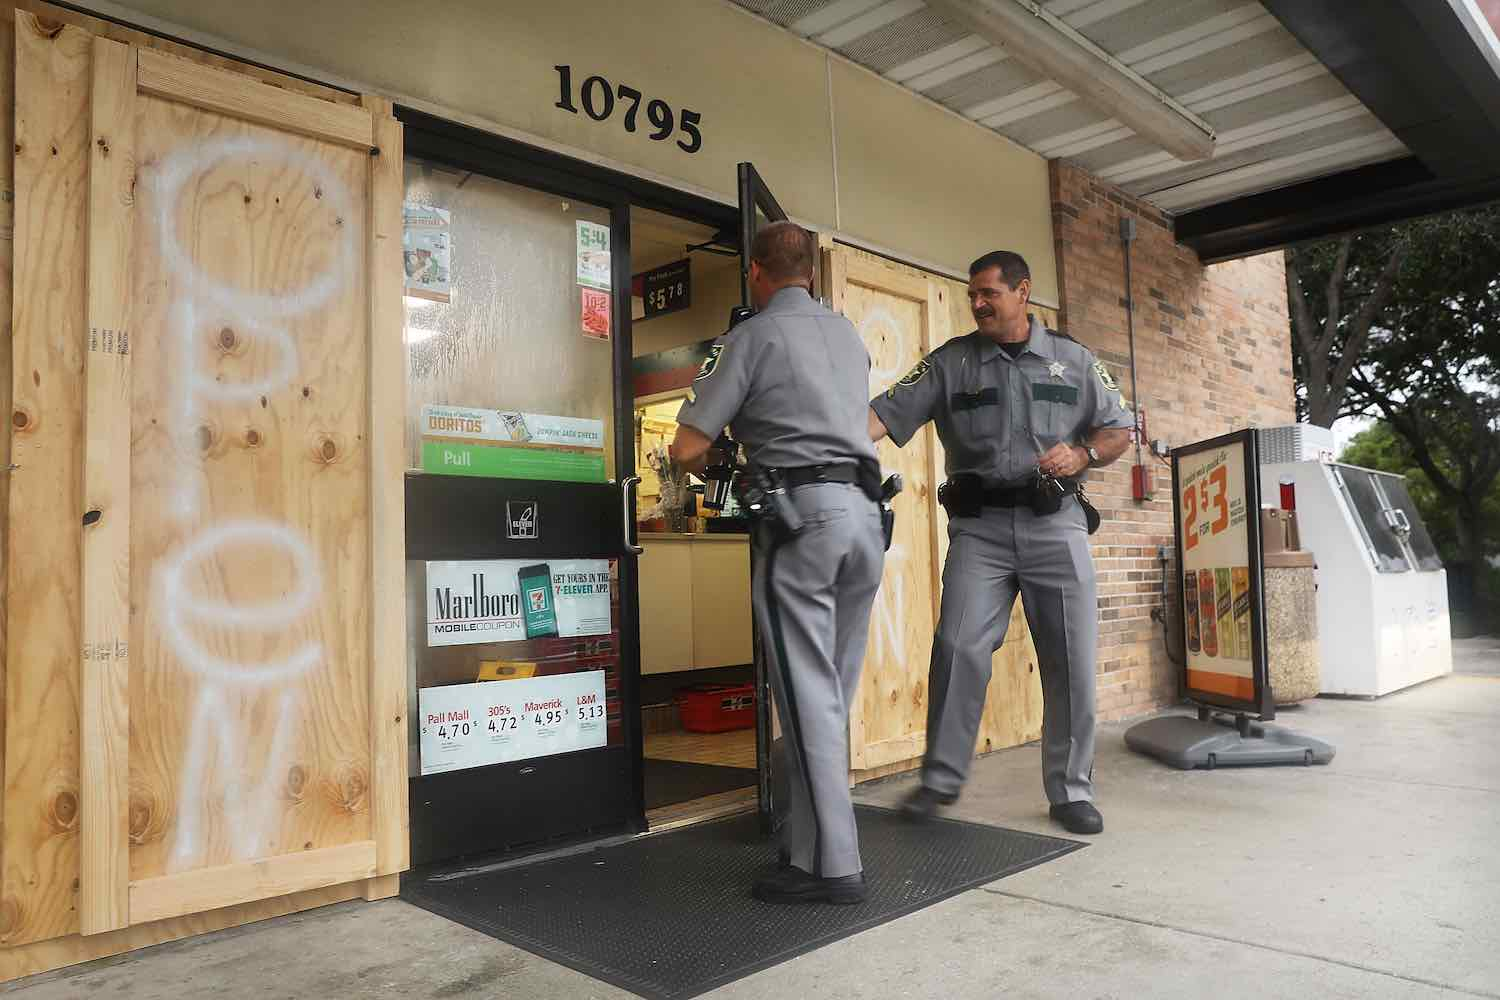 <div class='meta'><div class='origin-logo' data-origin='Creative Content'></div><span class='caption-text' data-credit='Spencer Platt/Getty'>Police enter one the few remaining businesses open in Naples before the arrival of Hurricane Irma into Southwest Florida on September 9, 2017 in Naples, Florida.</span></div>